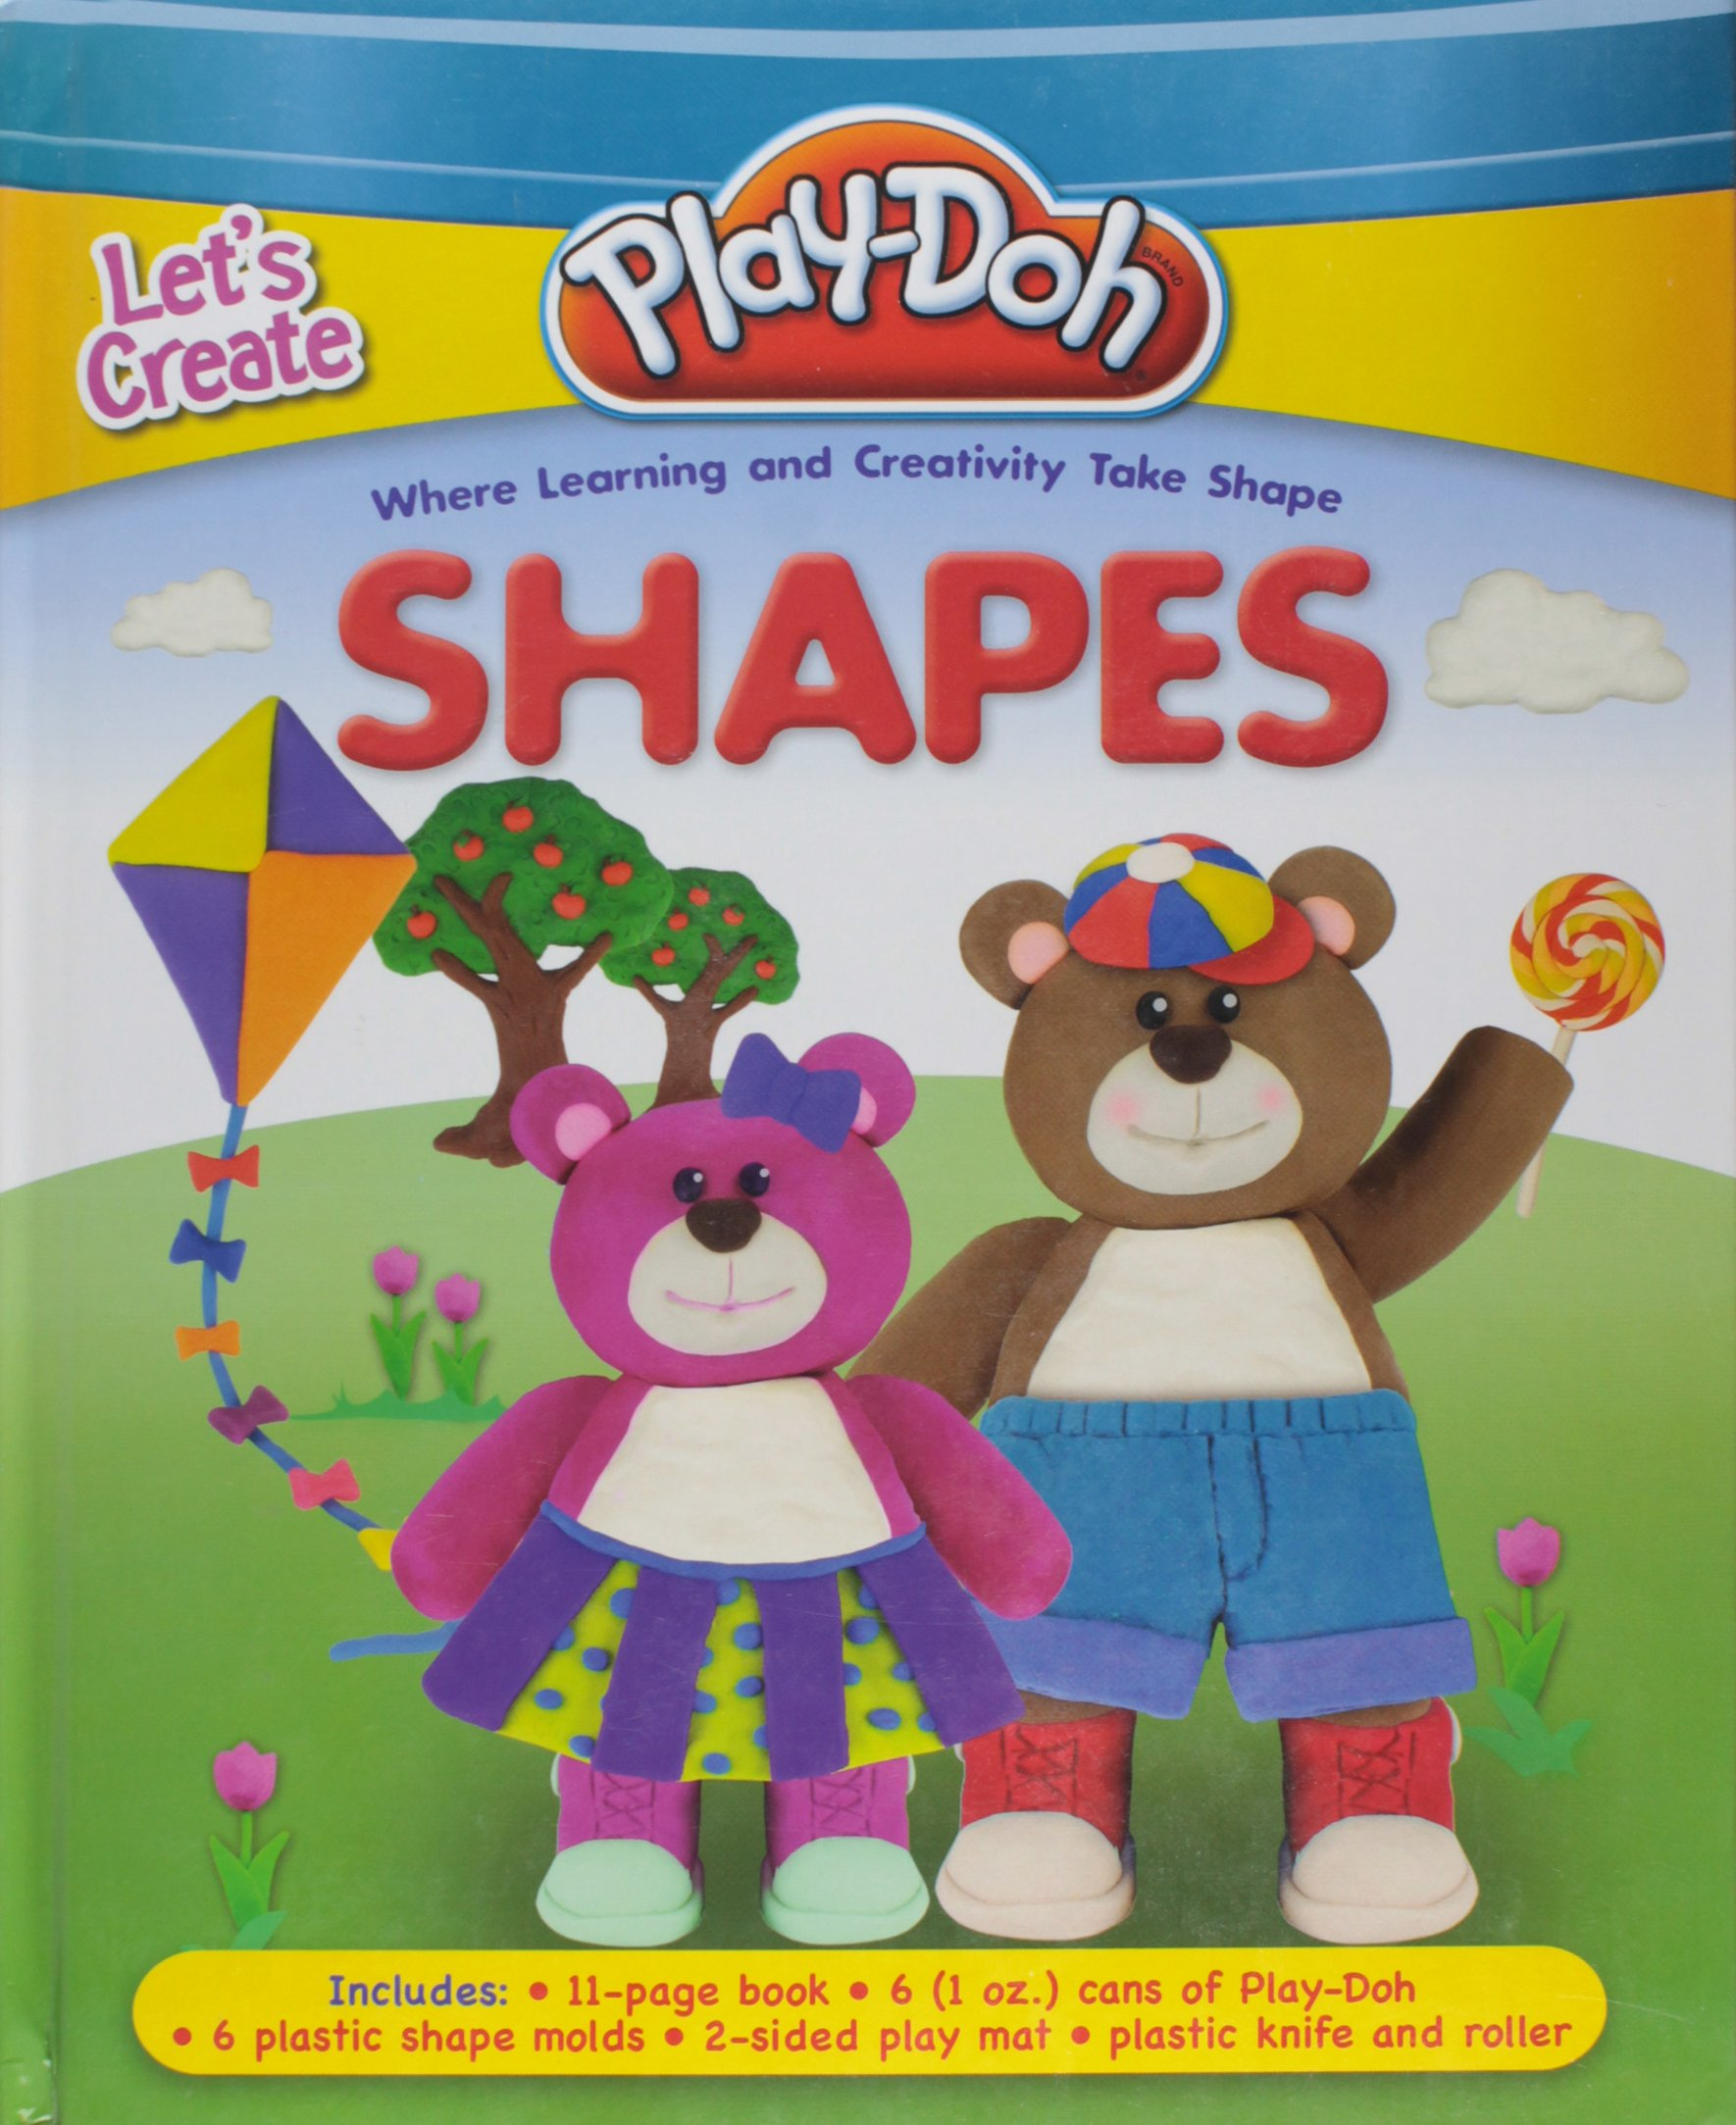 Download PLAY-DOH Let's Create: Shapes: Where Learning and Creativity Take Shape ebook